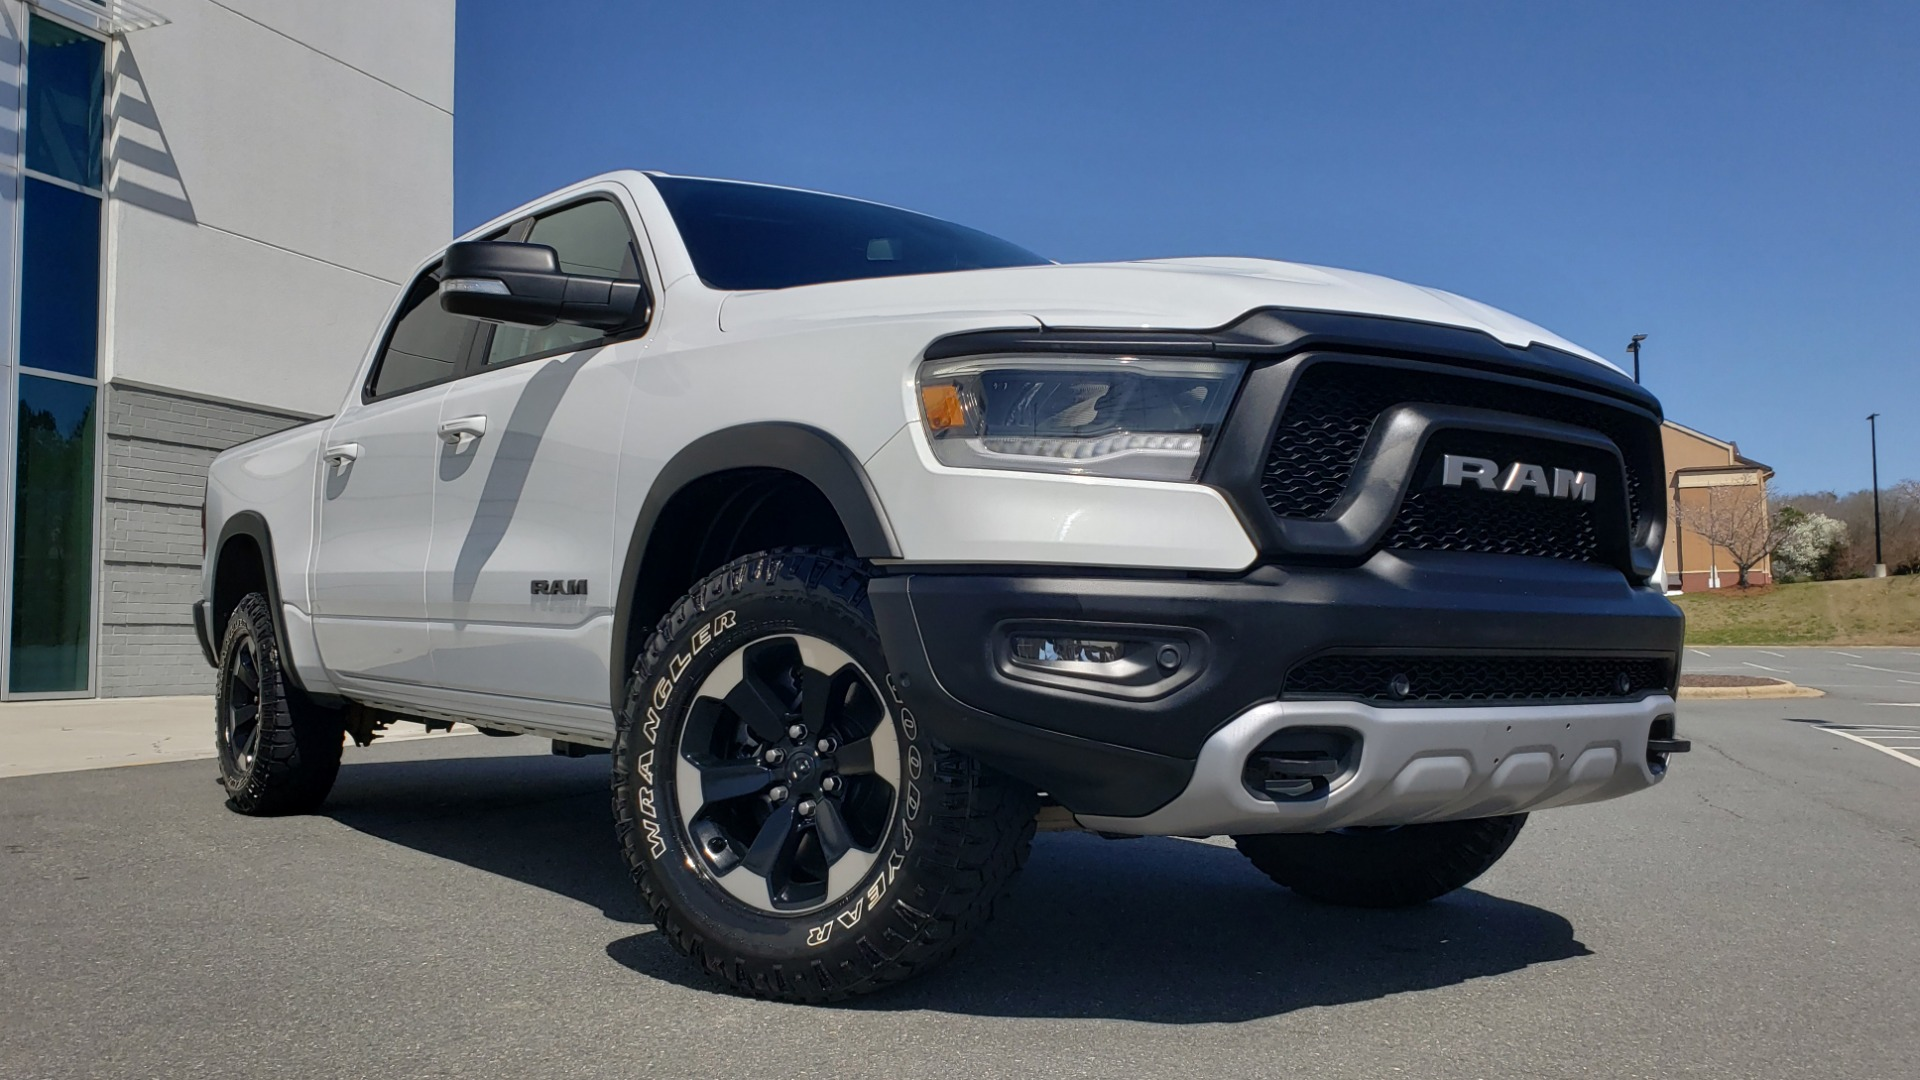 Used 2019 Ram 1500 REBEL CREWCAB 4X4 / 5.7L V8 HEMI / 8-SPD AUTO / REARVIEW for sale Sold at Formula Imports in Charlotte NC 28227 2